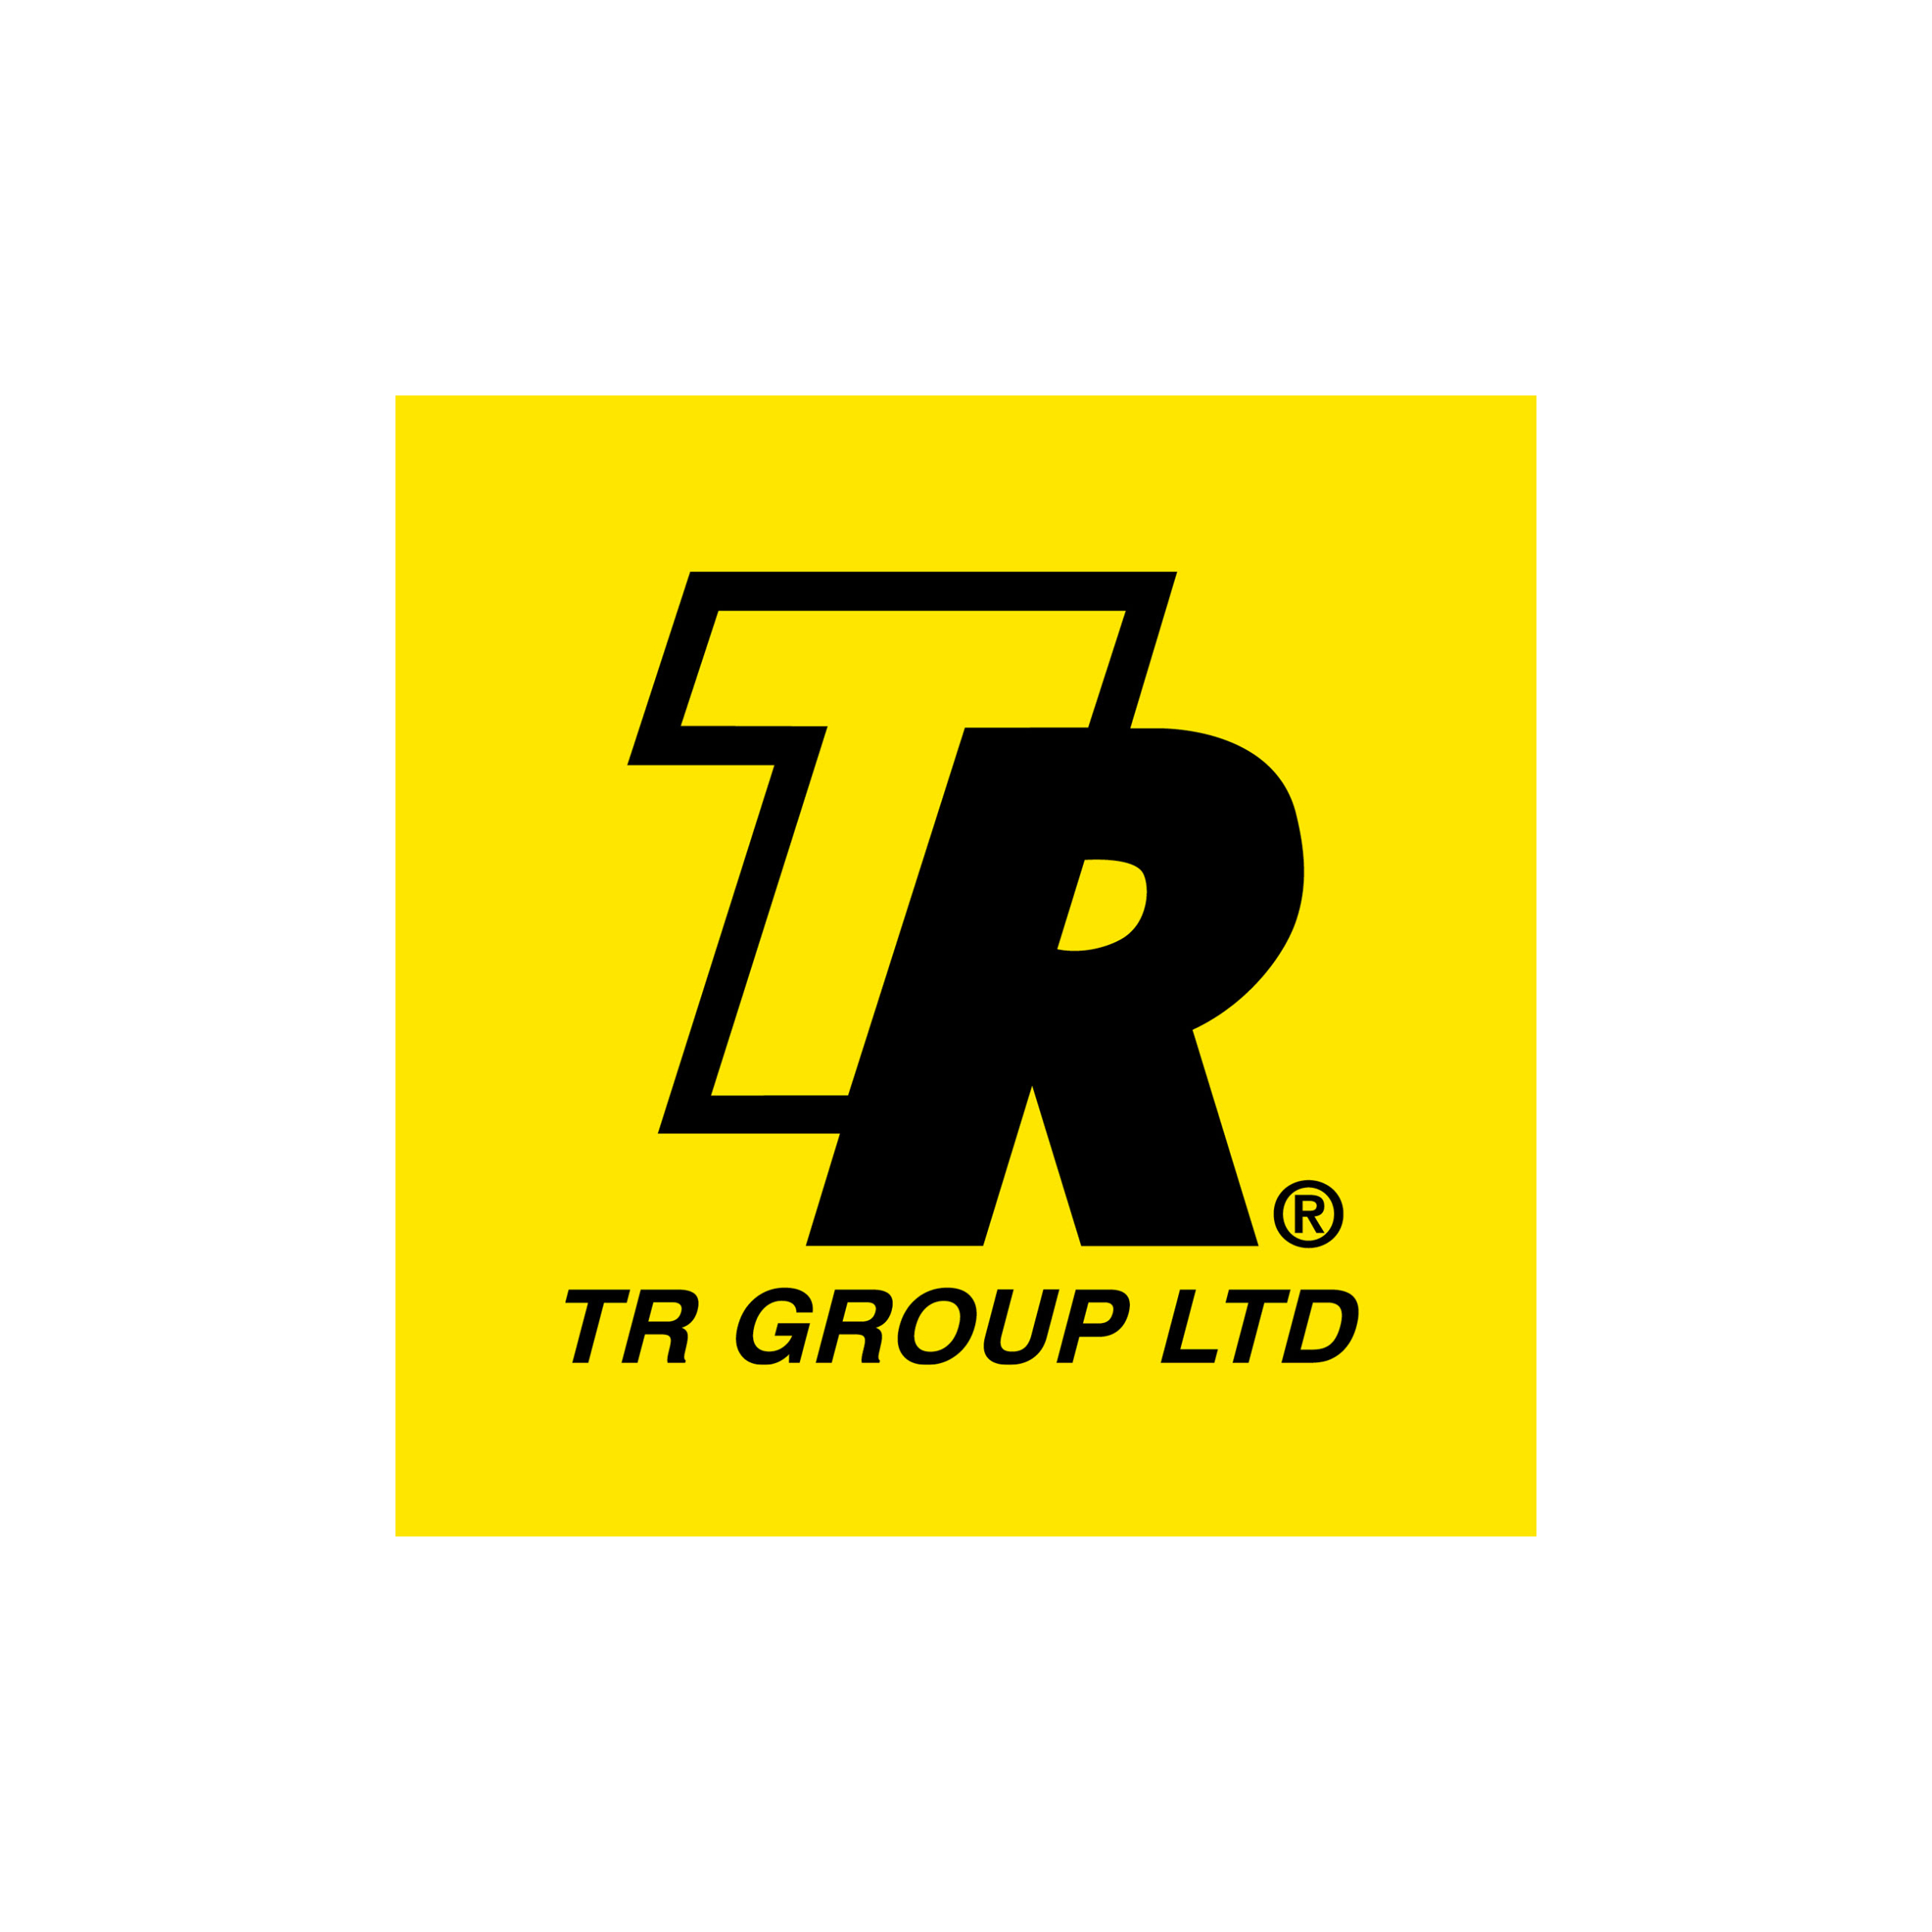 TR Group